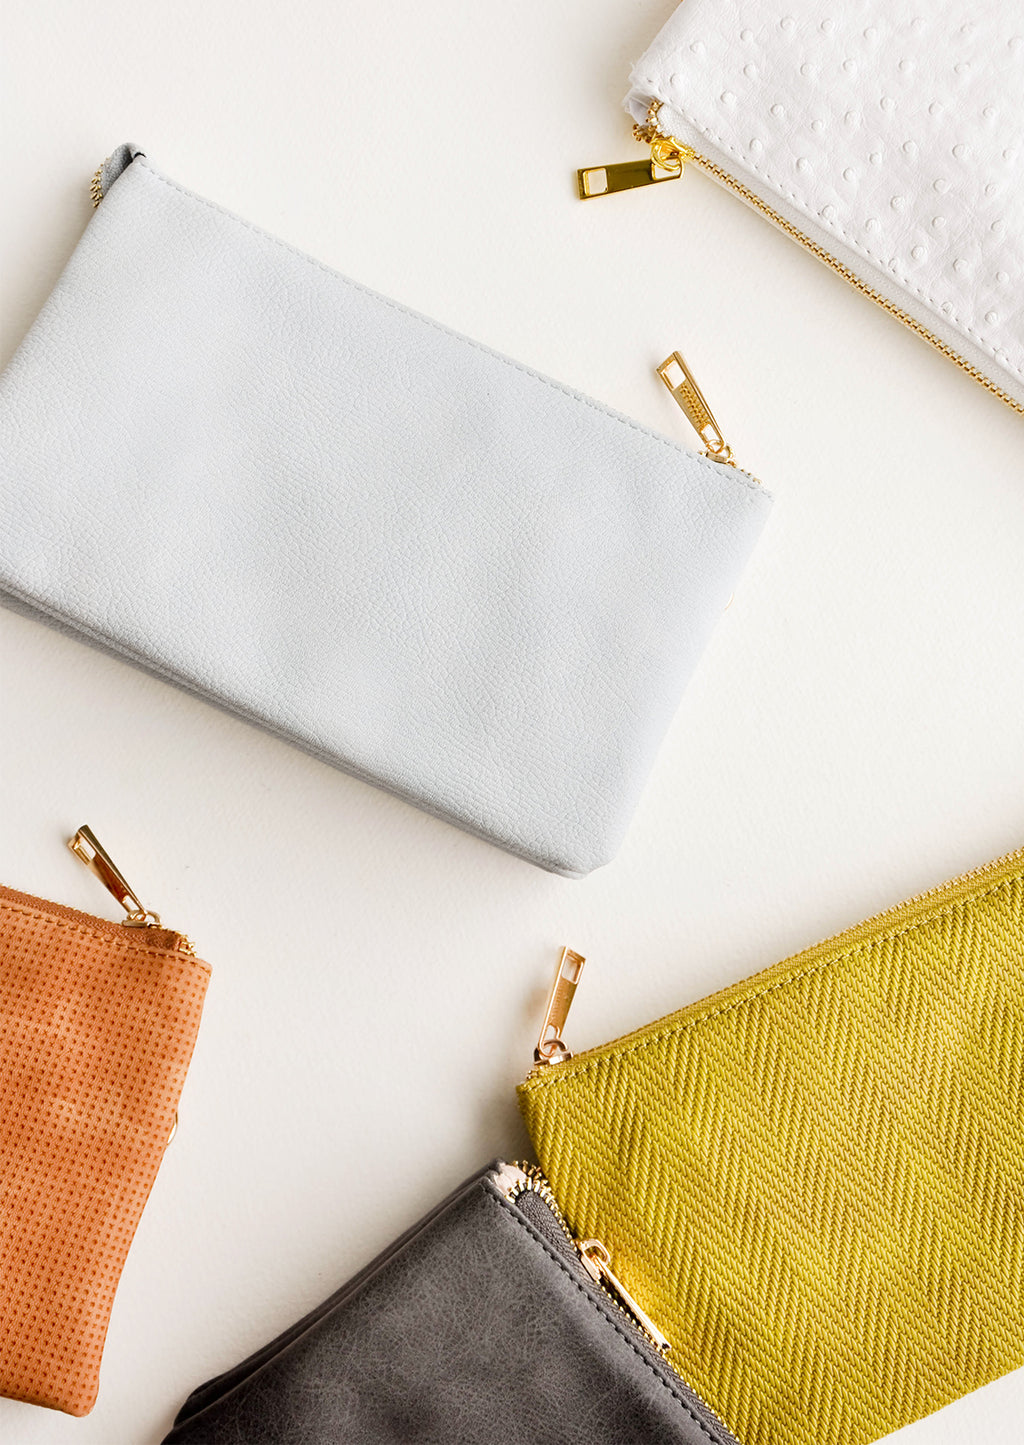 2: Product shot featuring several colors of a clutch purse.